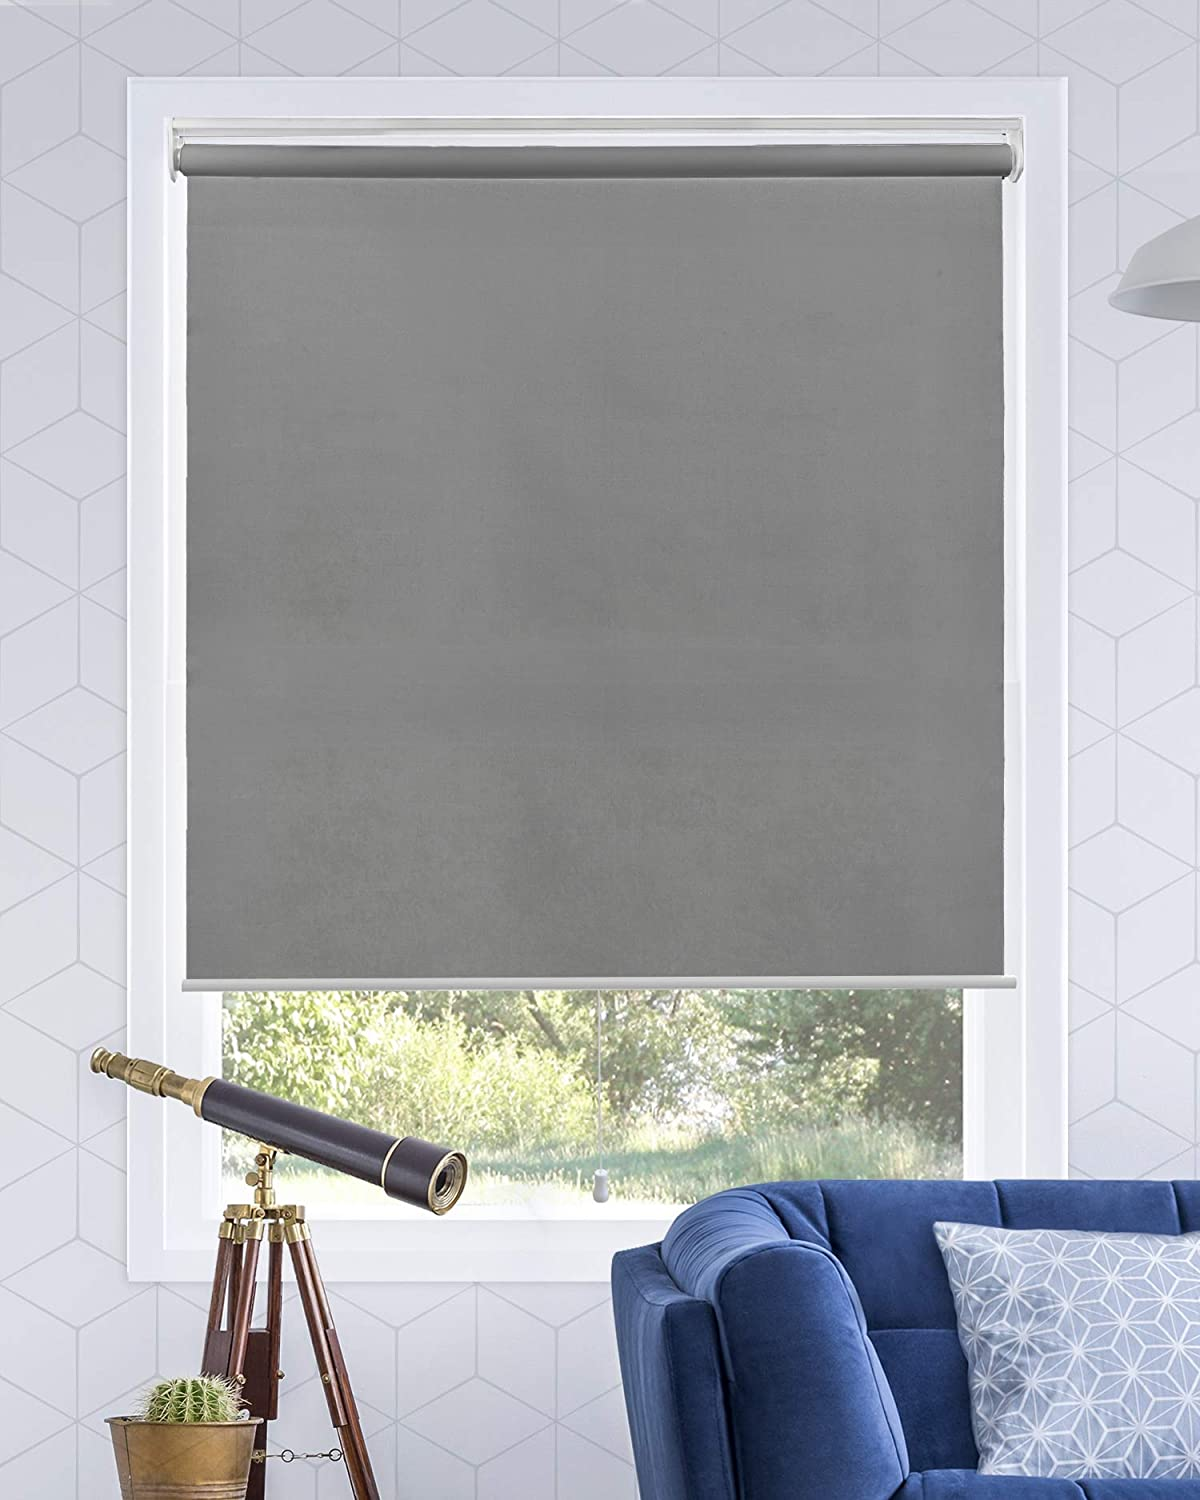 """CHICOLOGY Cordless Roller Shades Snap-N'-Glide Window Treatments Perfect for Living Room/Bedroom/Nursery/Office and More, 69"""" W X 72"""" H, Urban Grey (Light Filtering)"""